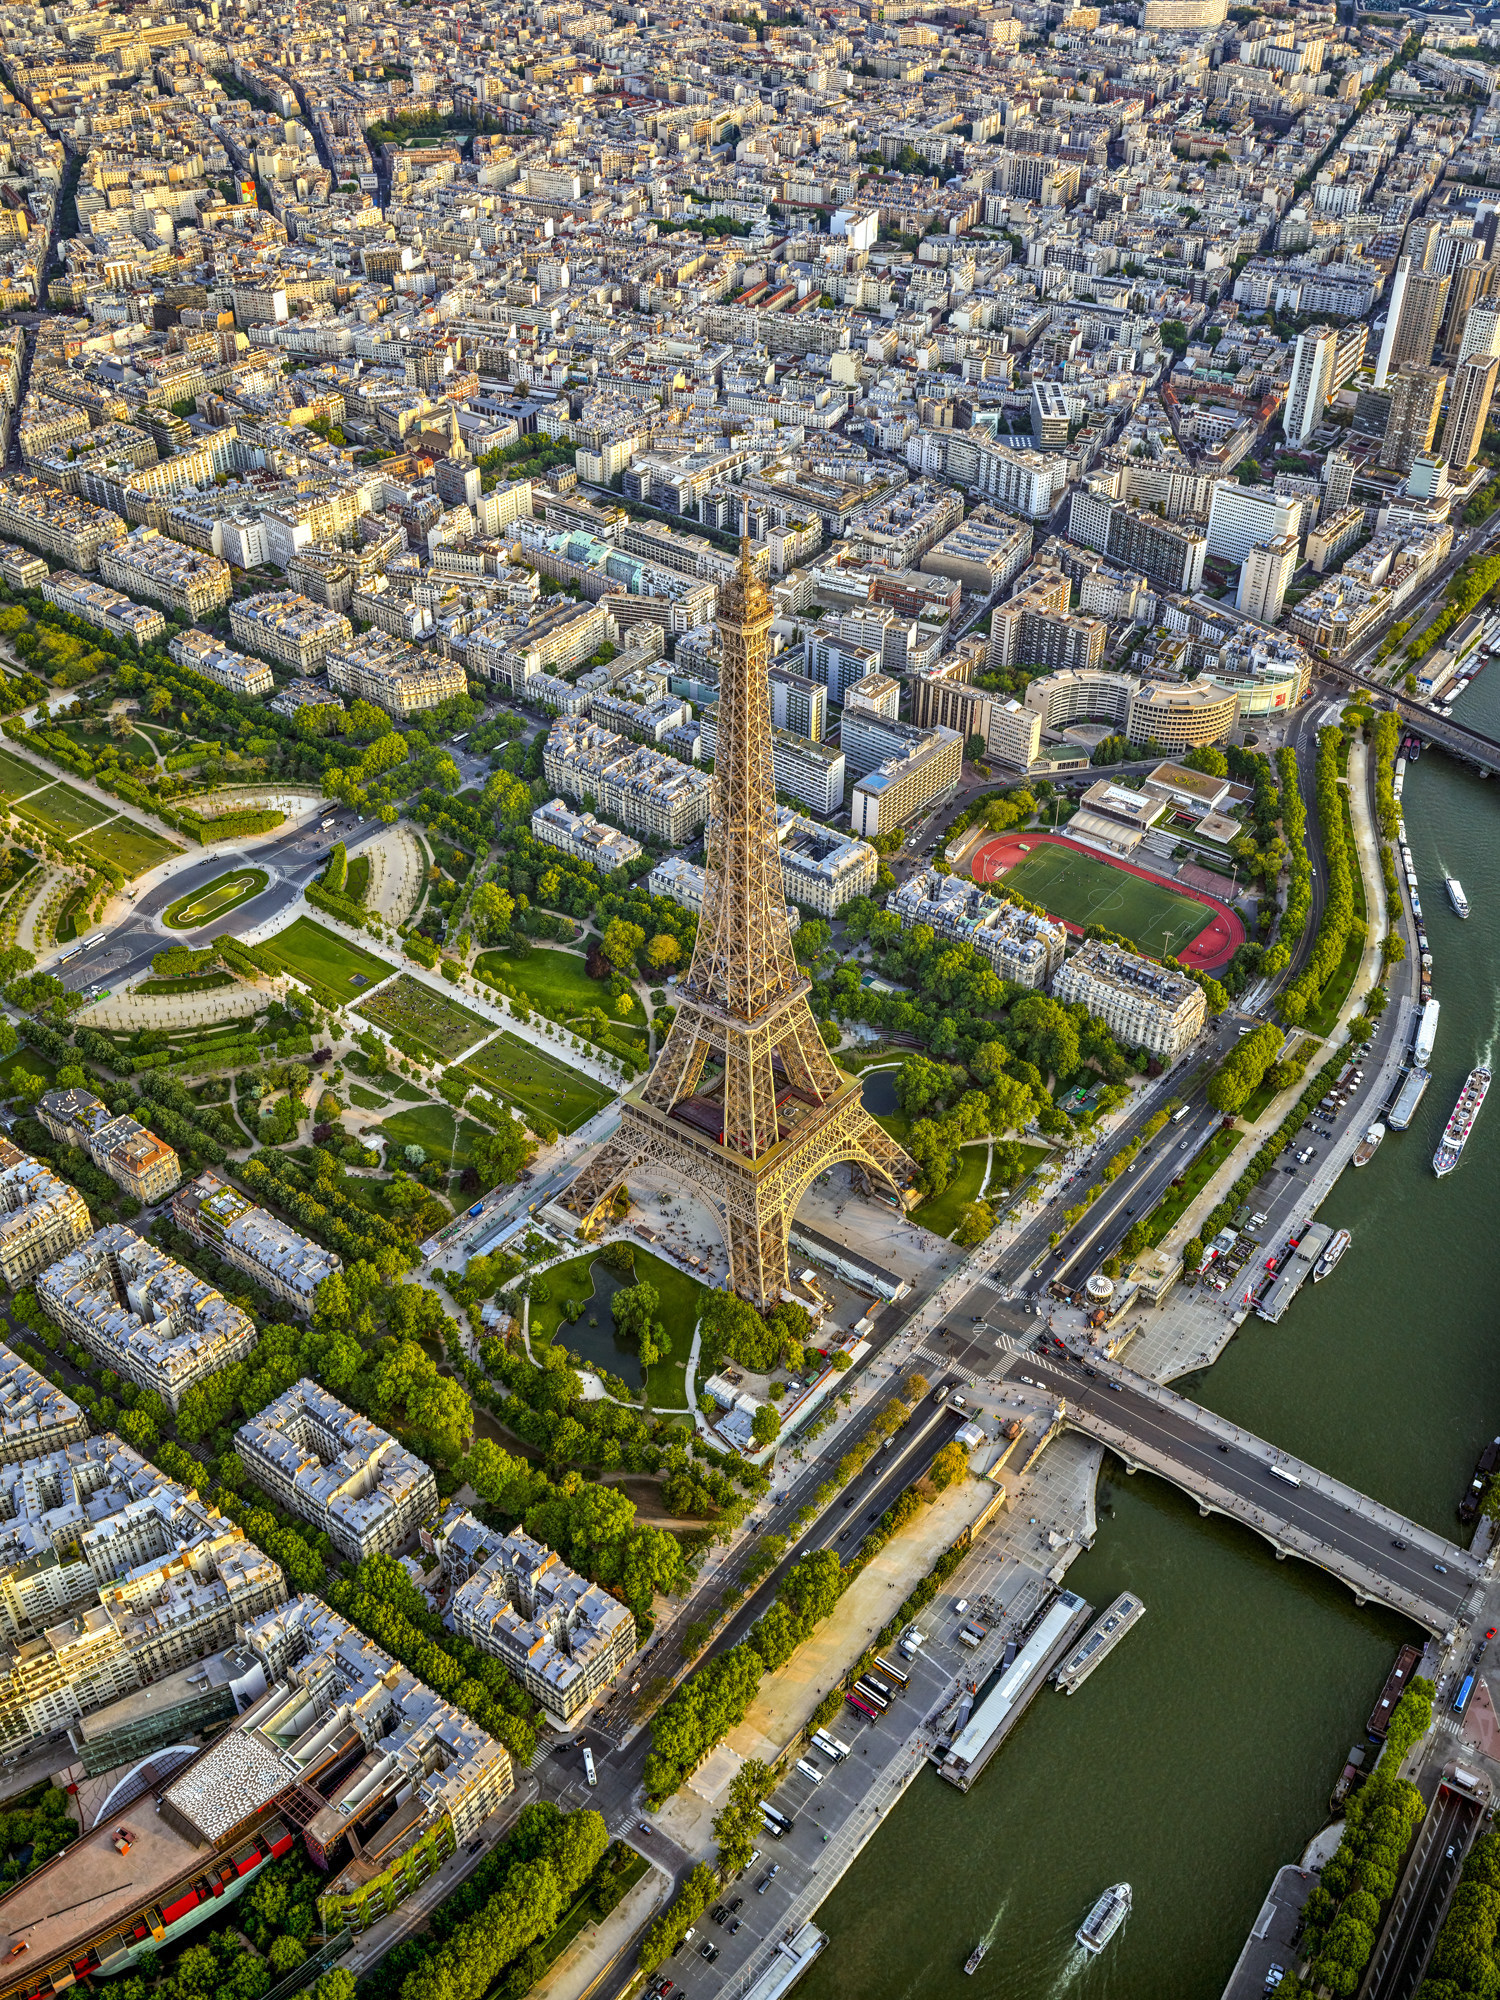 Paris Aerial Photography Awards launch best aerial photographs  international competition – The Dead Pixels Society